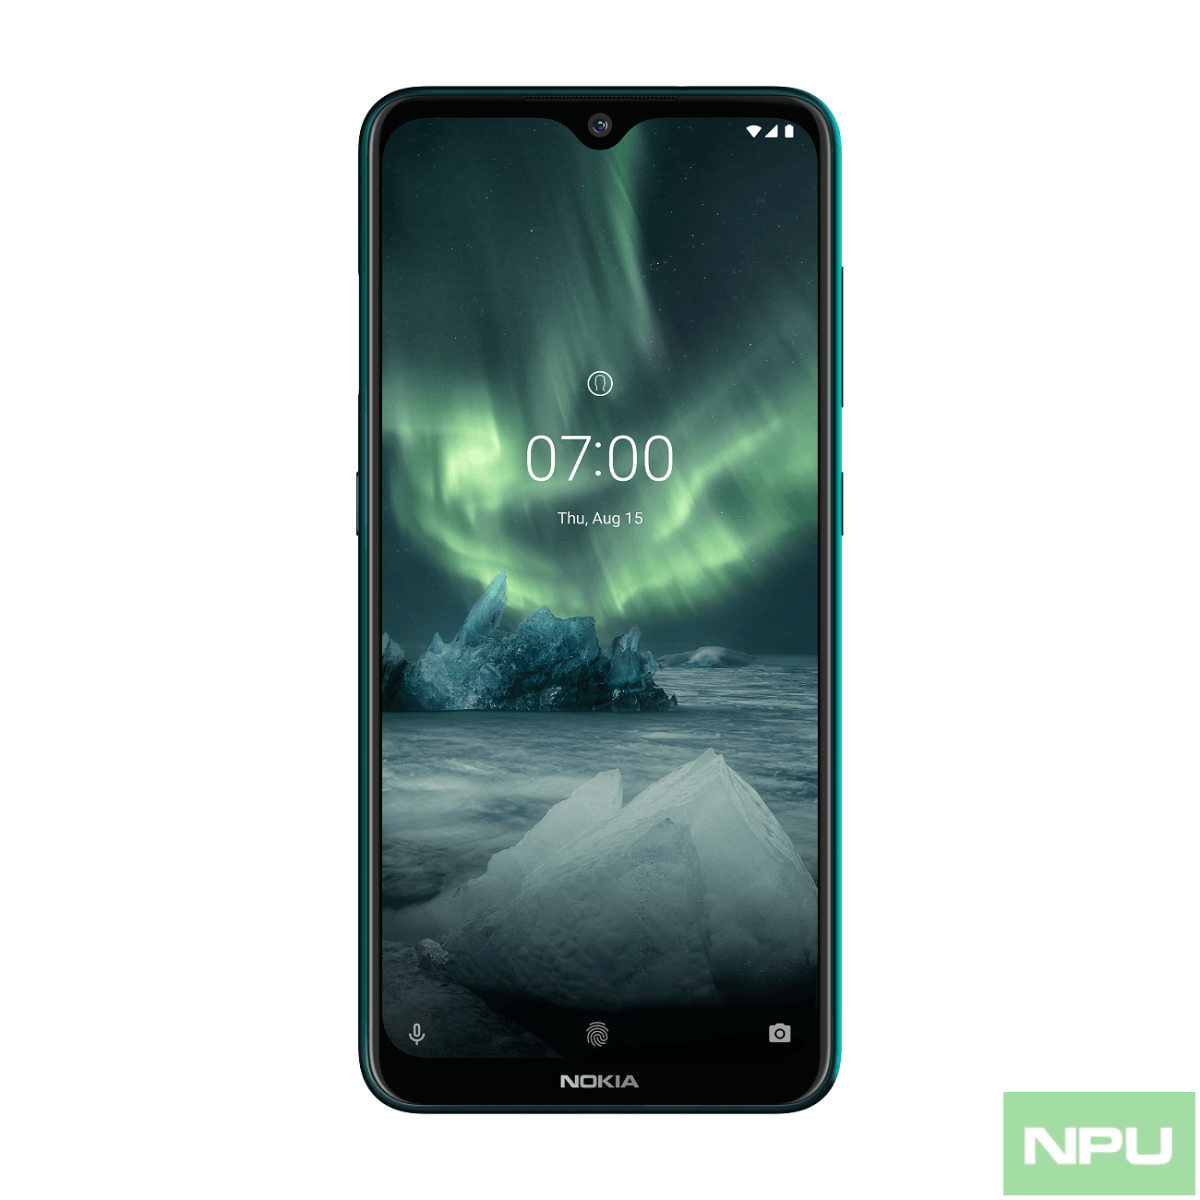 Rs 3100 discount on Nokia 6.2 + official Nokia smartphone exchange offer in India - Nokiapoweruser